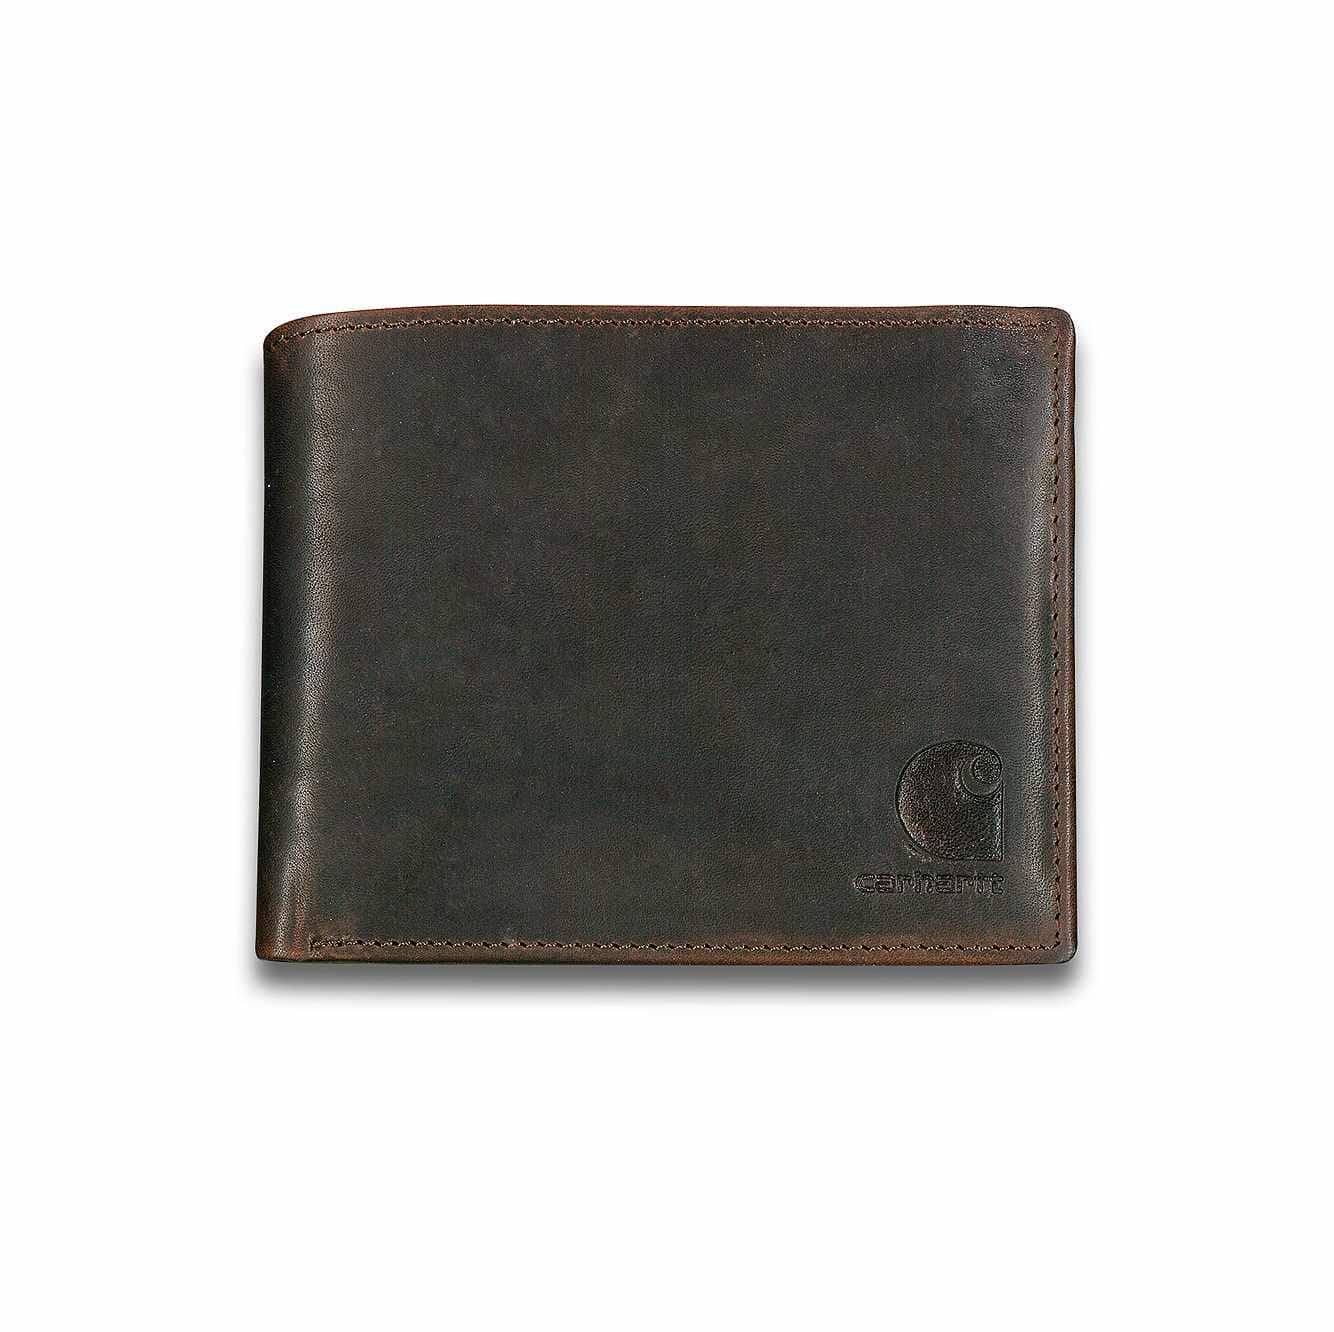 Picture of Oil Tan Passcase Wallet in Carhartt Brown